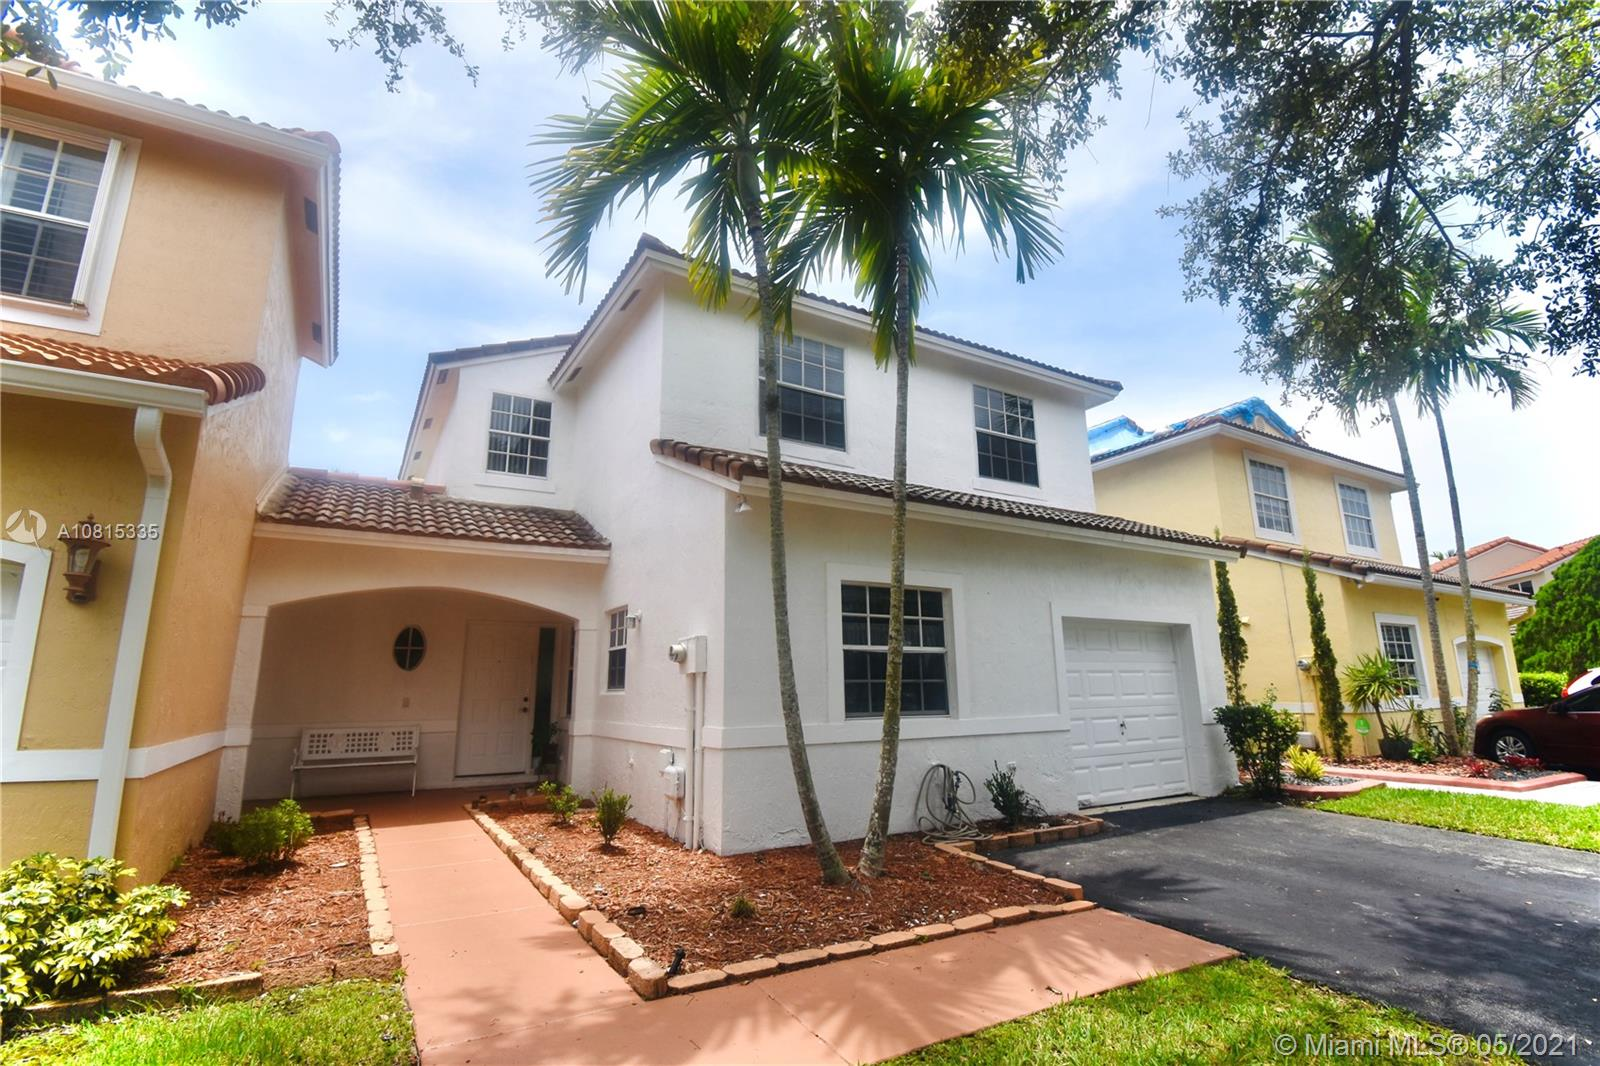 ONE OF WEST BROWARD desired Silver Lakes community: 3 bedrooms 2 1/2 bath Pembroke Pines Florida. New Roof to be placed includes The Pavilion at the SilverLakes Community Park and Access to EXCELLENT PUBLIC SCHOOLS, and close to everything: shopping malls, restaurants, parks and major highways. Accordion shutters. Cable / TV included in HOA. COME TO LIVE THIS AMAZING LIFESTYLE!